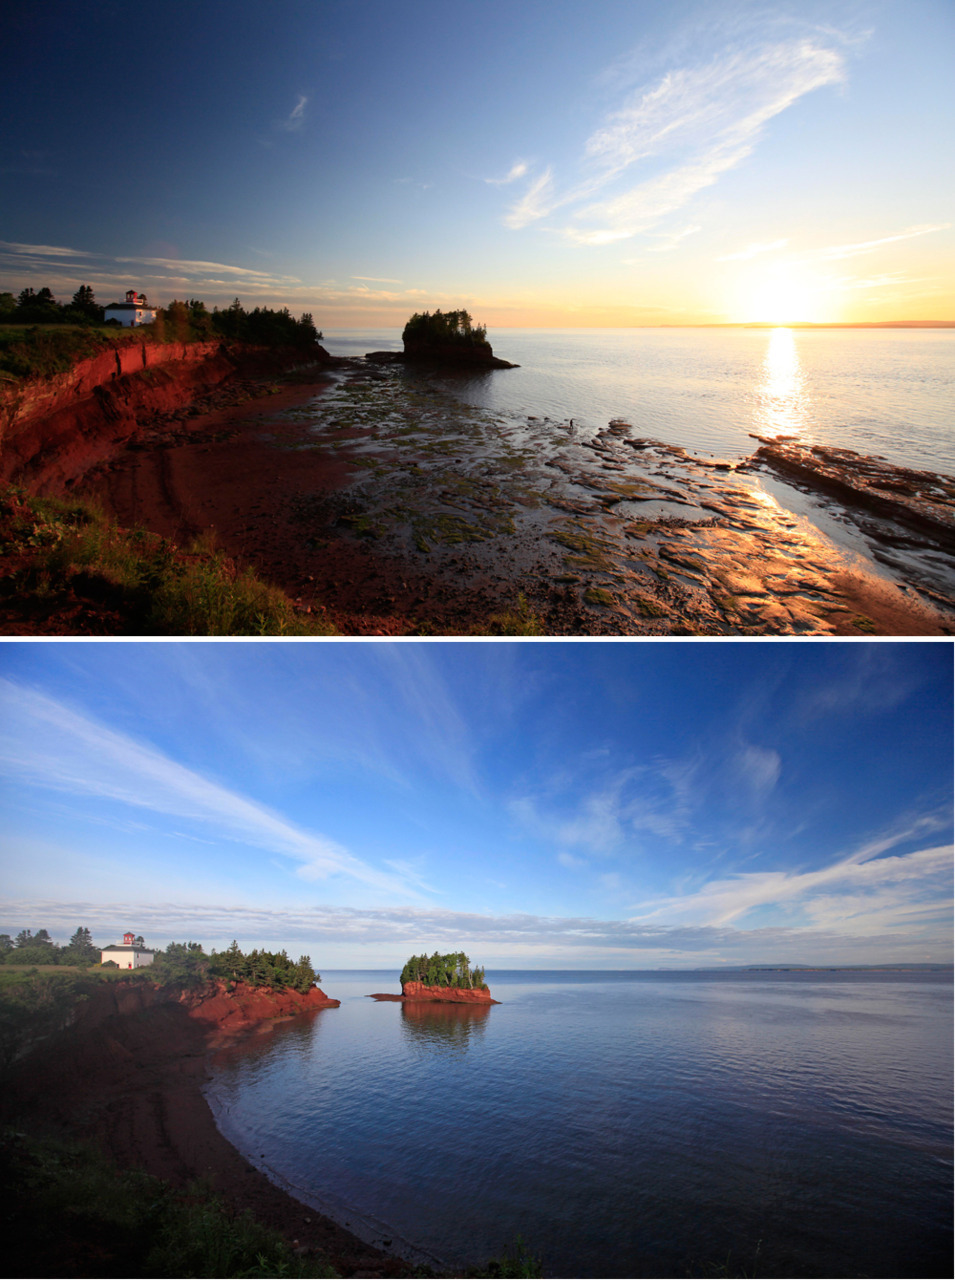 "Bay of Fundy, Canada's last shot at WonderhoodIf you did not already know, a major international election campaign has been waged these past few years, a high stakes war of electoral attrition pitting 28 natural wonders of the world — and the countries where said wonders are located — in a vote to determine the New7Wonders of Nature.It is a catchy label, and one that would presumably look awfully nice on tourist pamphlets, international travel brochures and websites promoting the Bay of Fundy, Canada's lone surviving entry in a global popularity contest cooked up by the New7Wonders Foundation.It is like ""American Idol"" or ""So You Think You Can Dance, Canada,"" only the 28 natural beauties shaking their hips include Mt. Kilimanjaro, the Great Barrier Reef, the Grand Canyon, the Dead Sea, the Cliffs of Moher and, well, the Bay of Fundy. (Photos: Len Wagg/Communications Nova Scotia)"